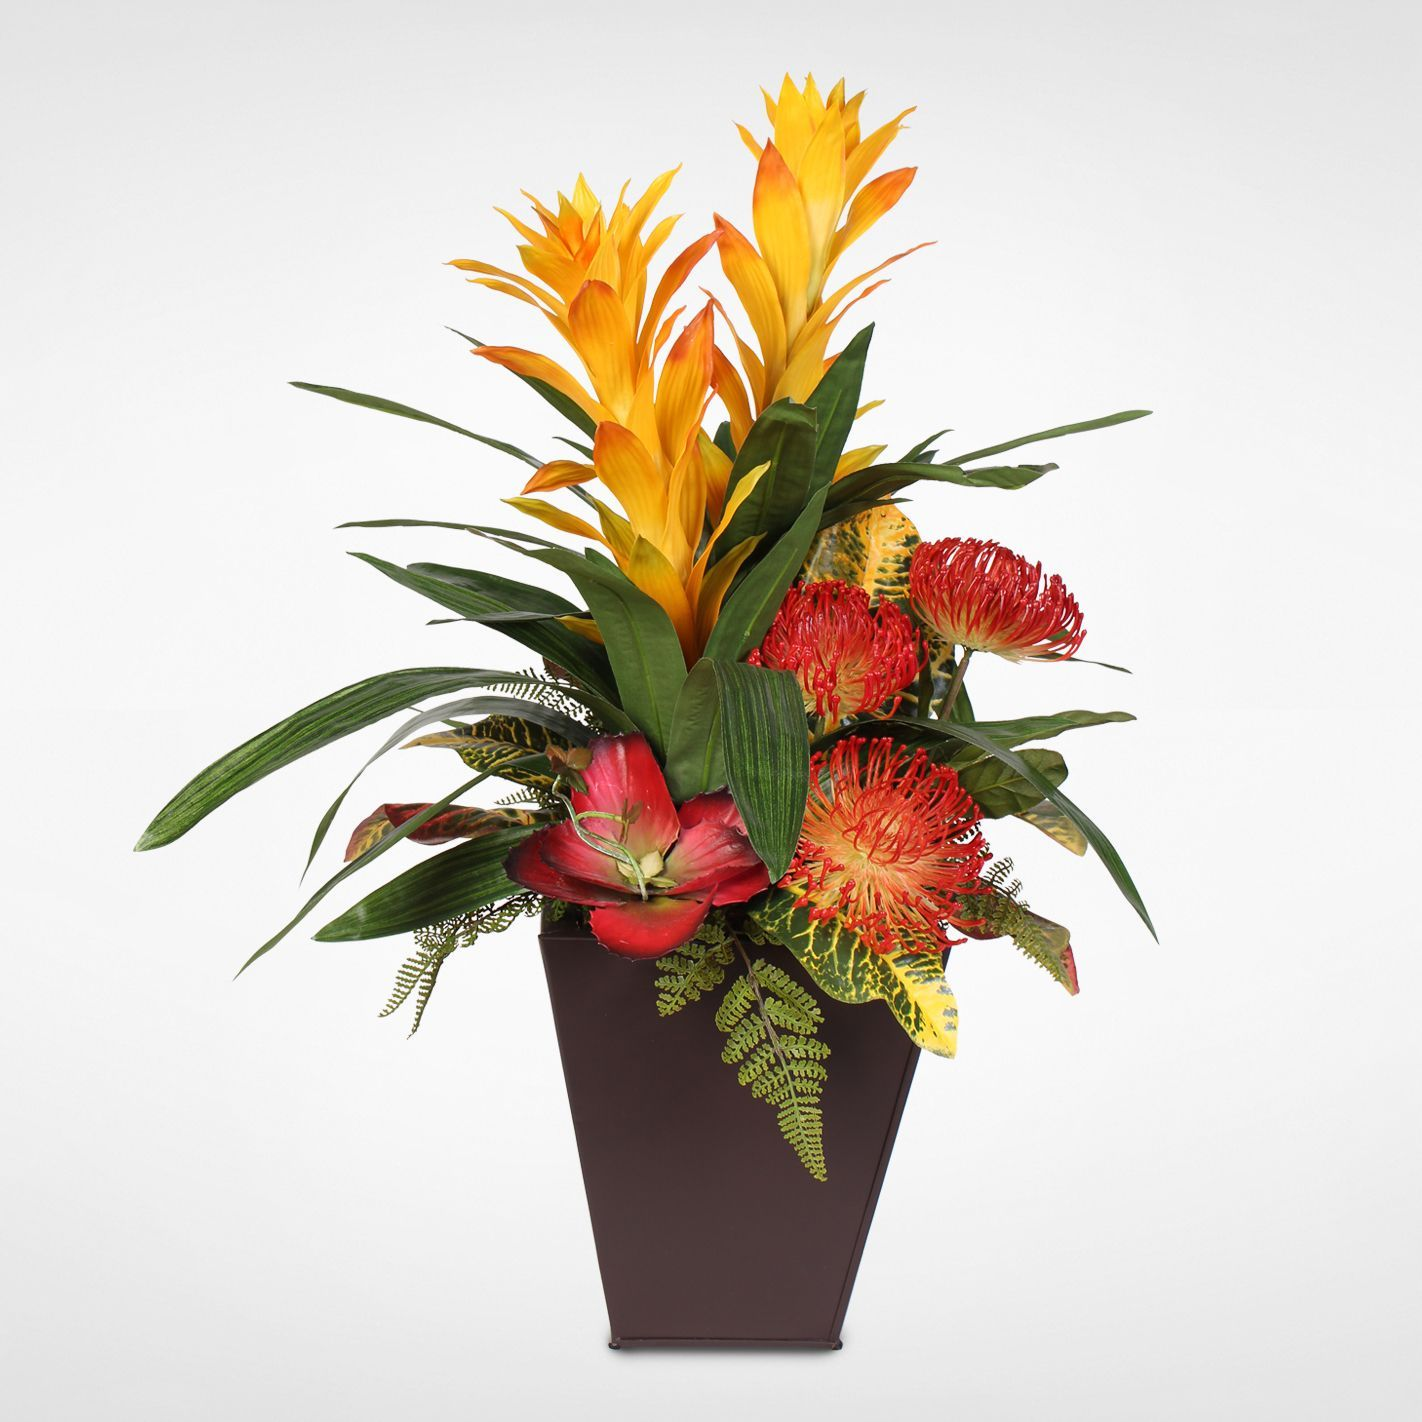 Guzmania Plant with Exotic Flower Variety Arrangement in a Metal (Grey)  Container (Exotic Flower Arrangement in a Metal Container)